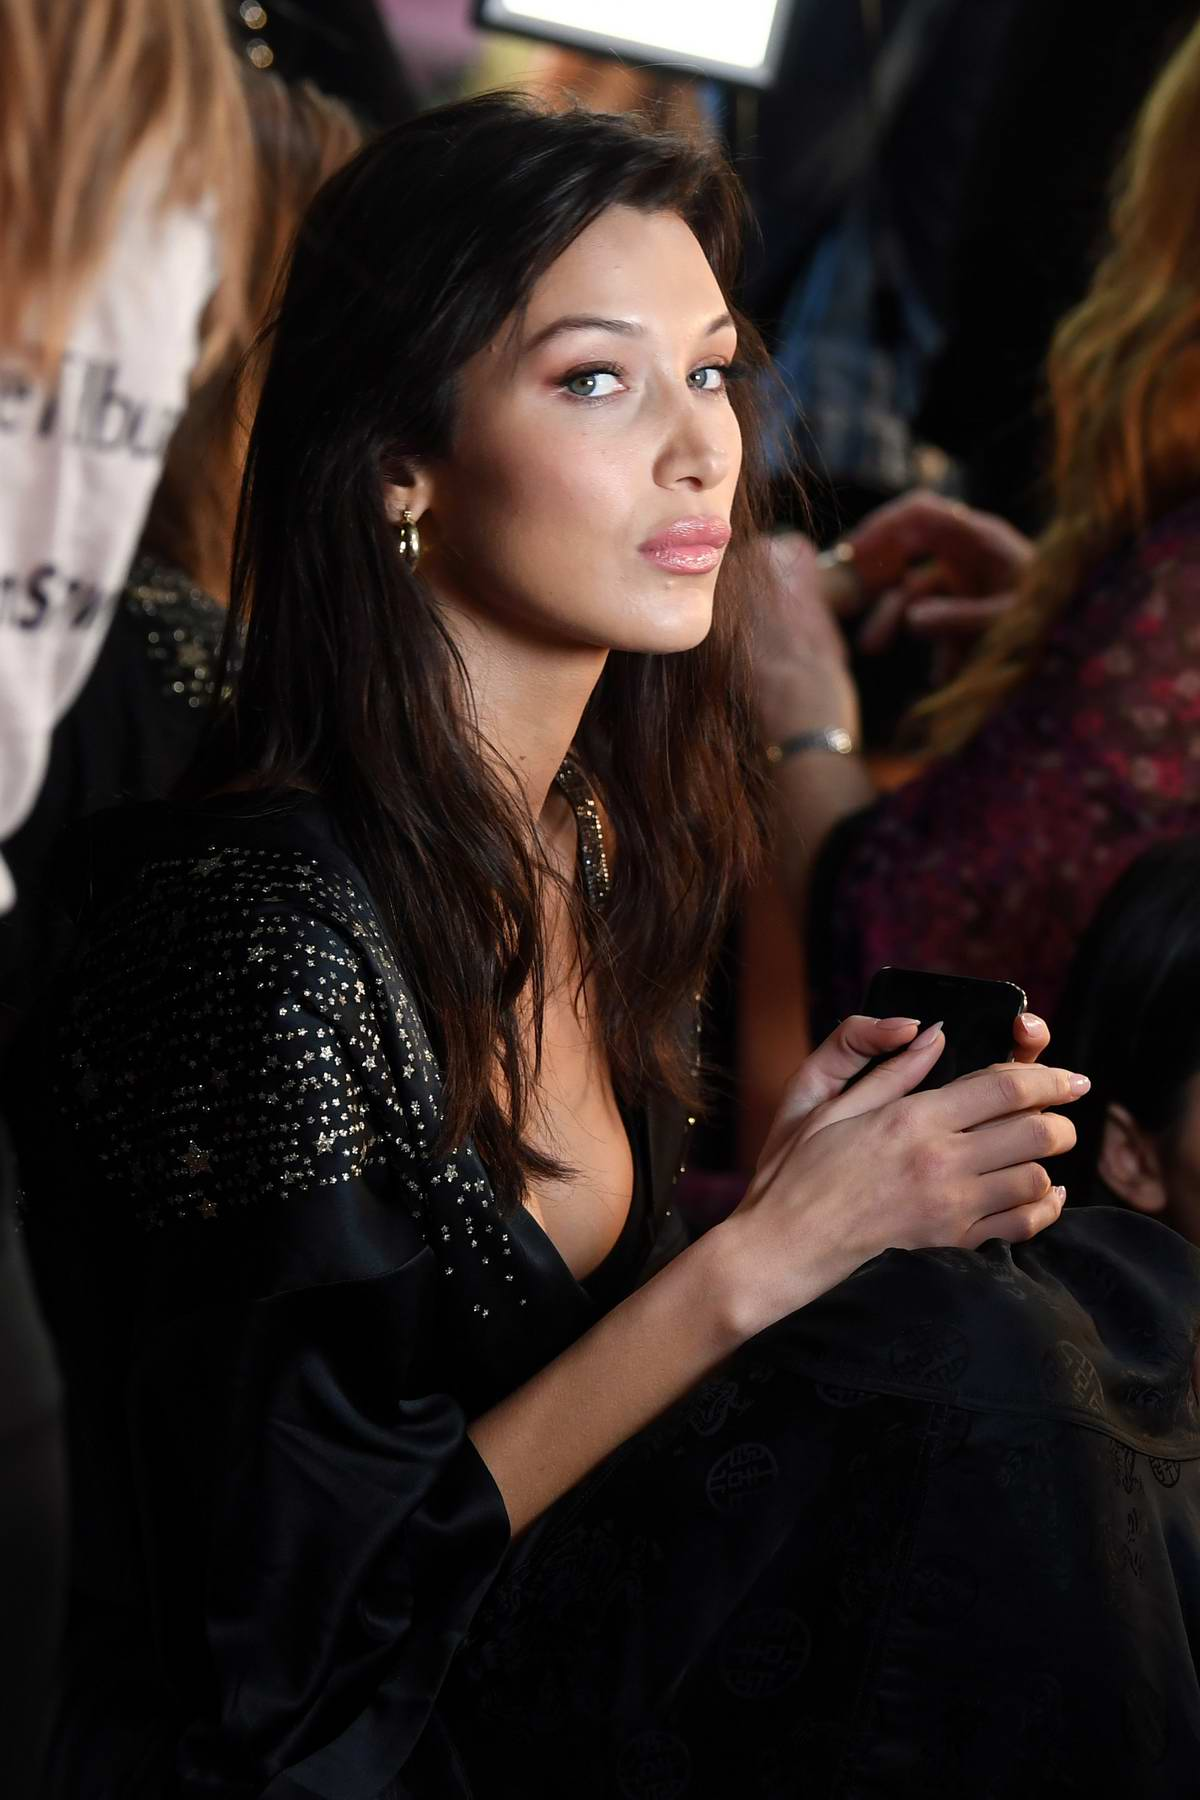 Bella Hadid seen backstage during the 2018 Victoria's Secret Fashion Show in New York City